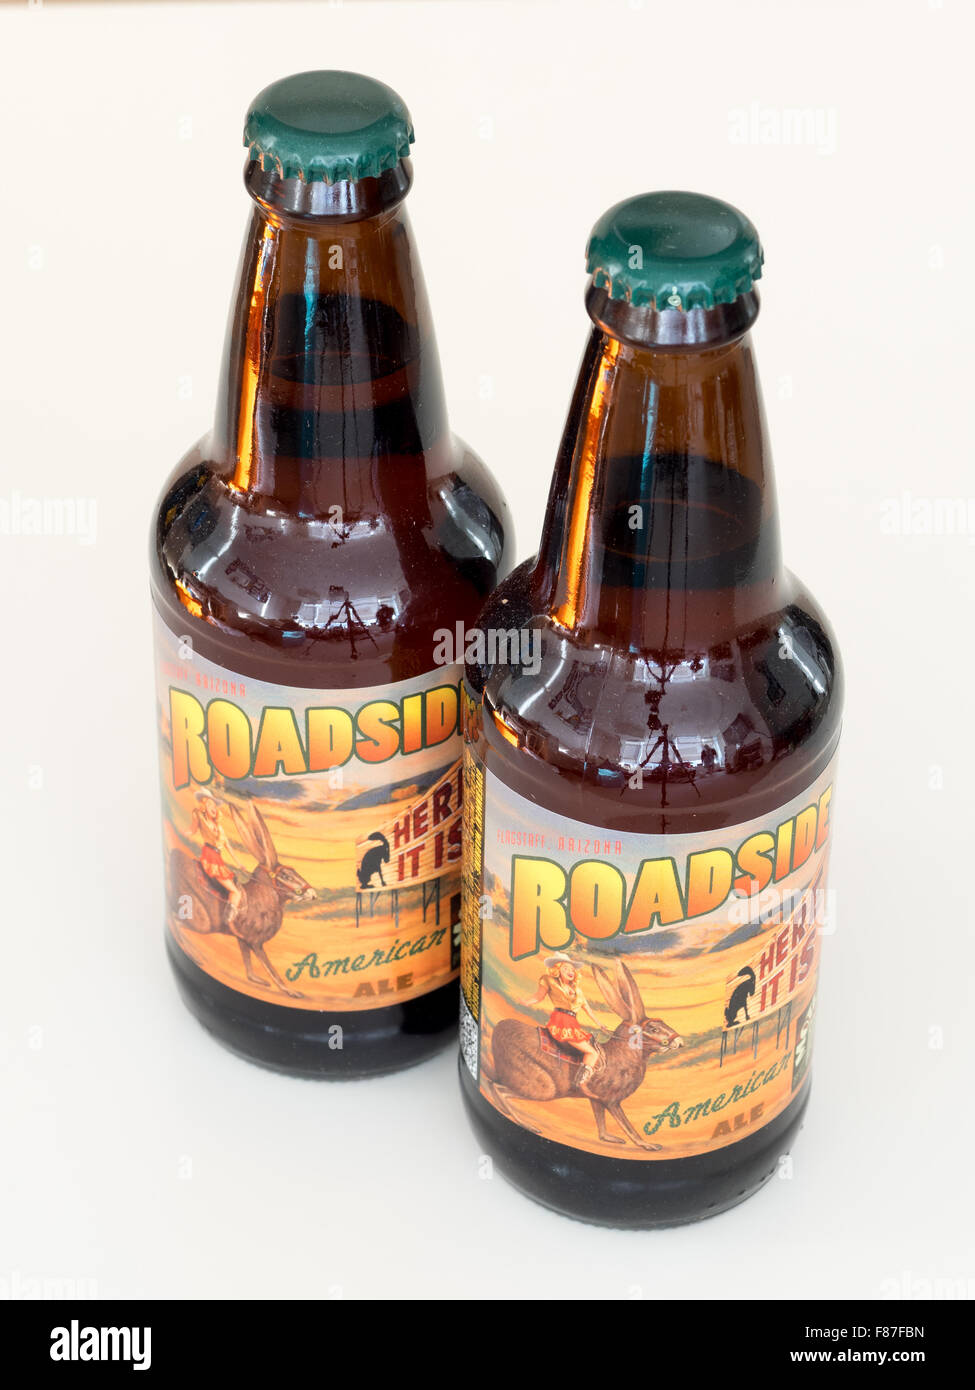 A bottle of Roadside American Ale, produced by the Mother Road Brewing Company of Flagstaff, Arizona. - Stock Image